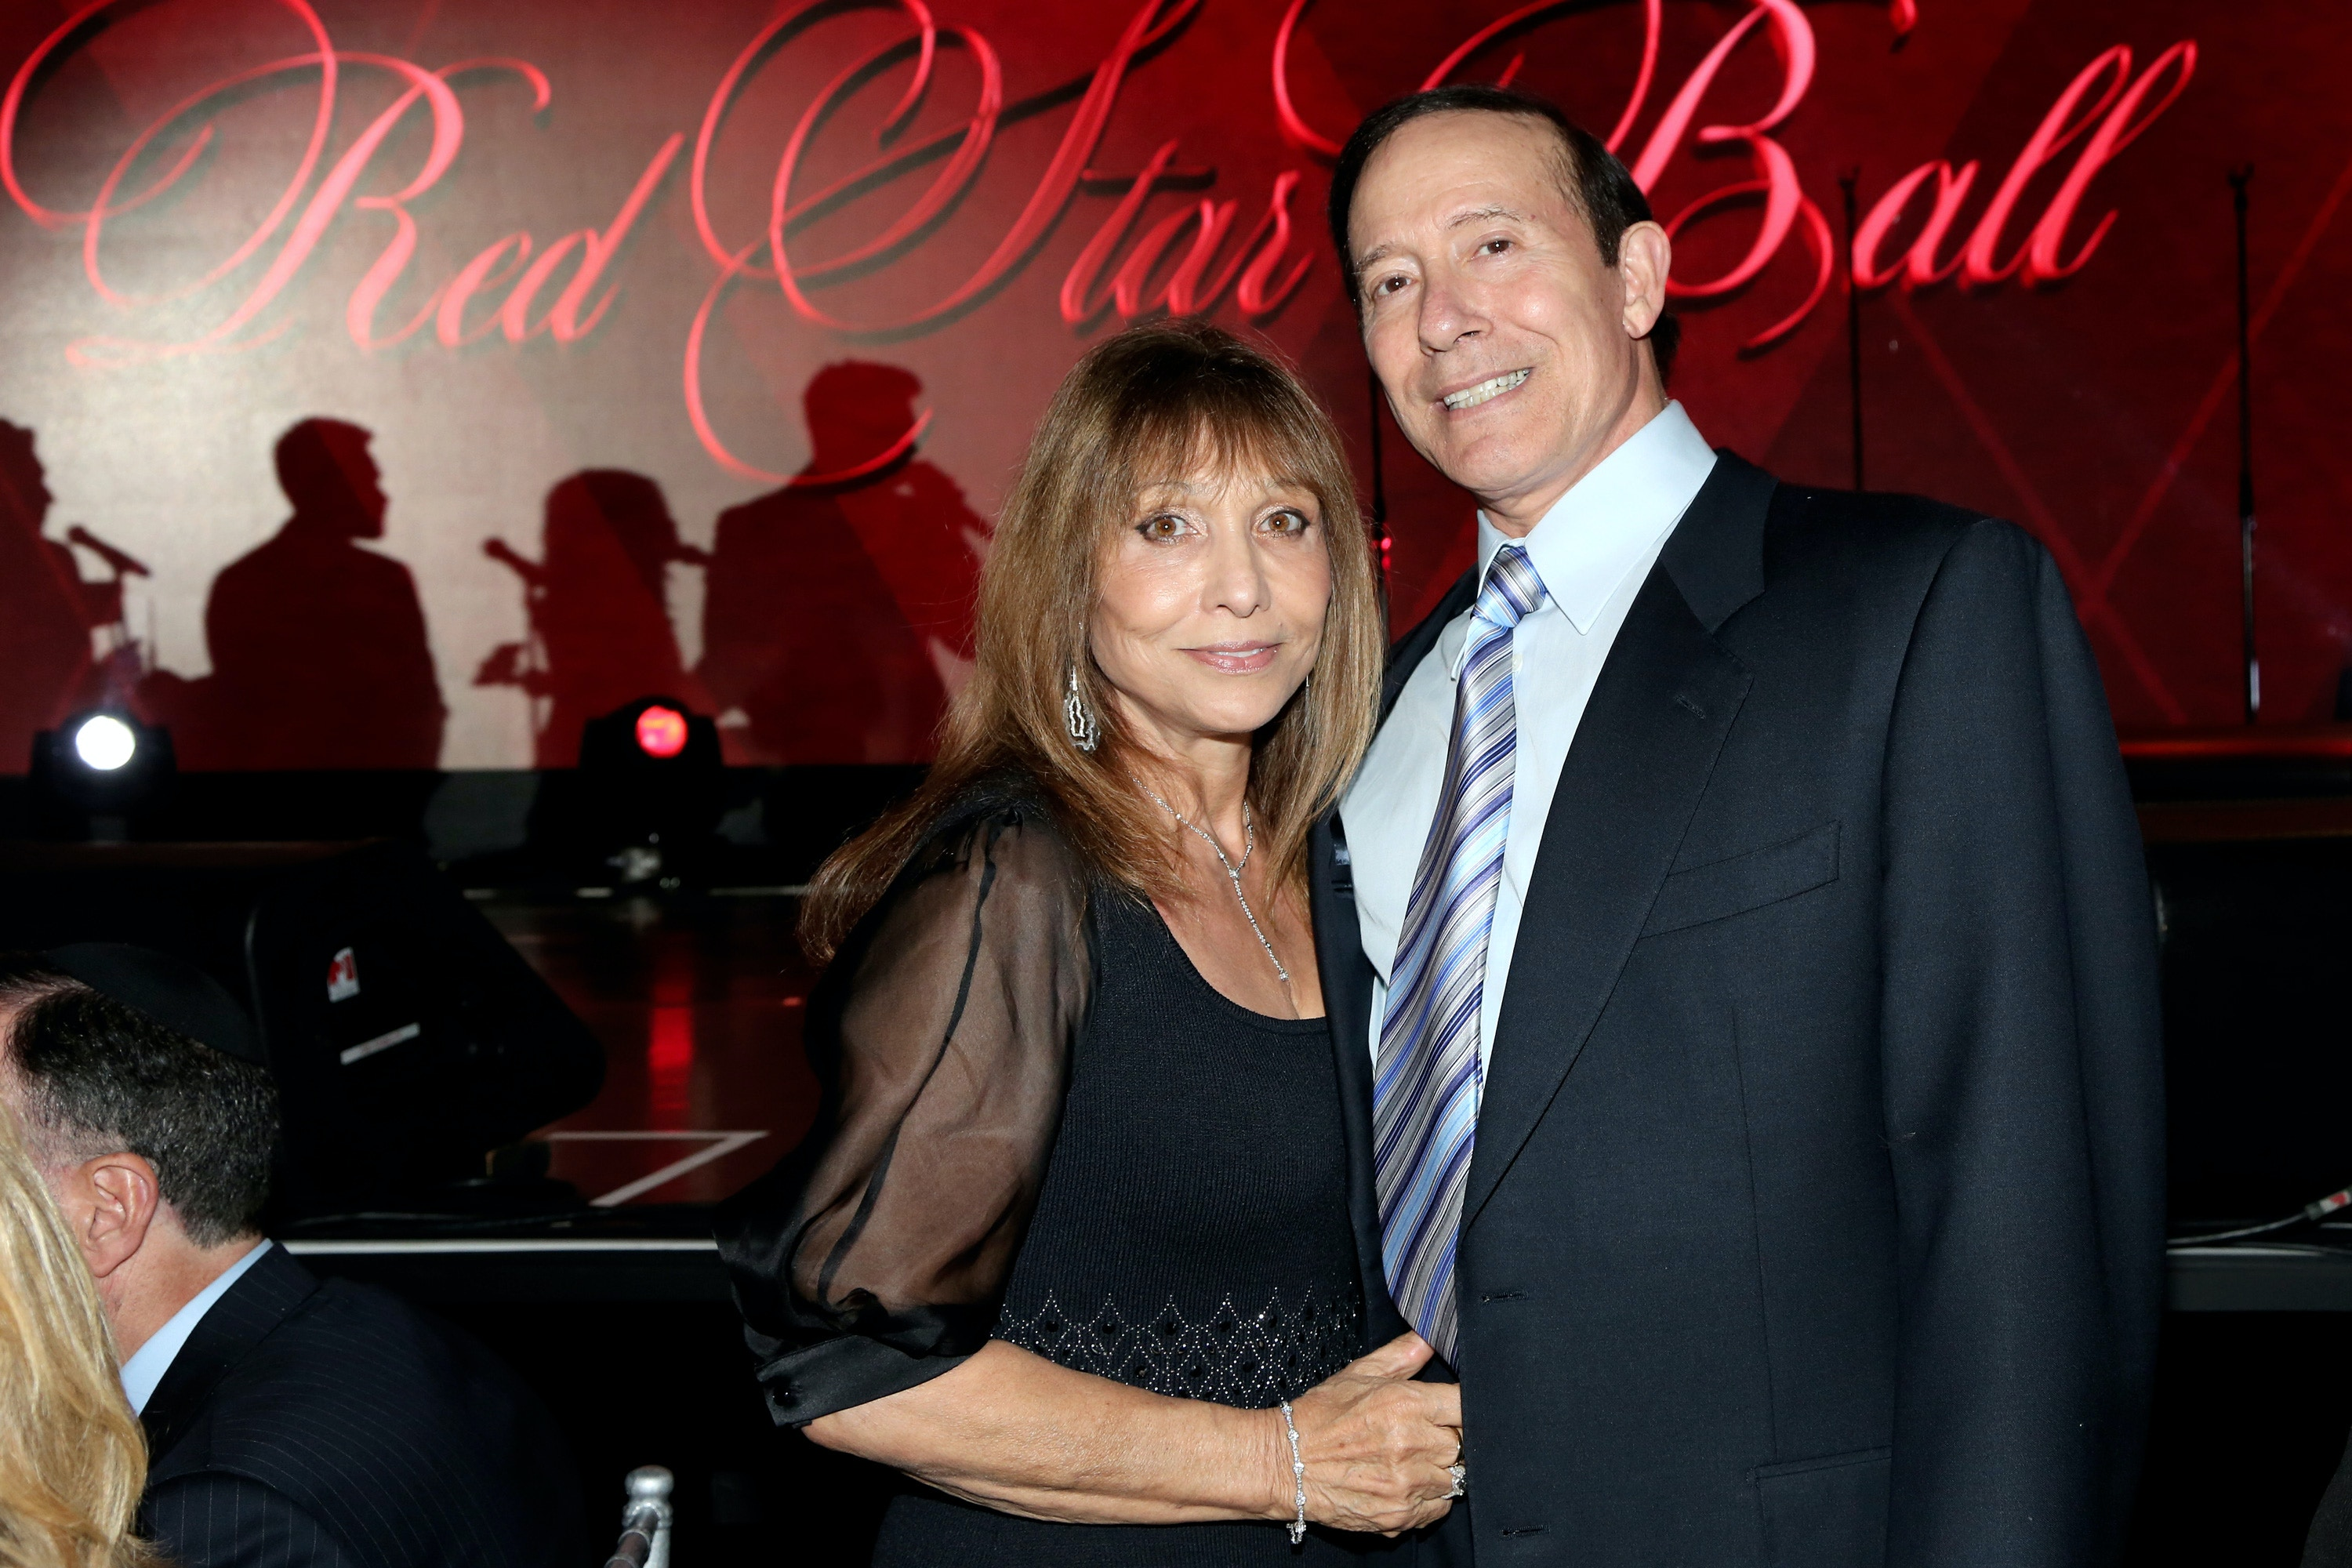 BEVERLY HILLS, CA - NOVEMBER 01:  Honorees Gila Milstein (L) and Adam Milstein attend the American Friends of Magen David Adom's Red Star Ball at The Beverly Hilton Hotel on November 1, 2016 in Beverly Hills, California.  (Photo by Maury Phillips/Getty Images for American Friends of Magen David Adom )